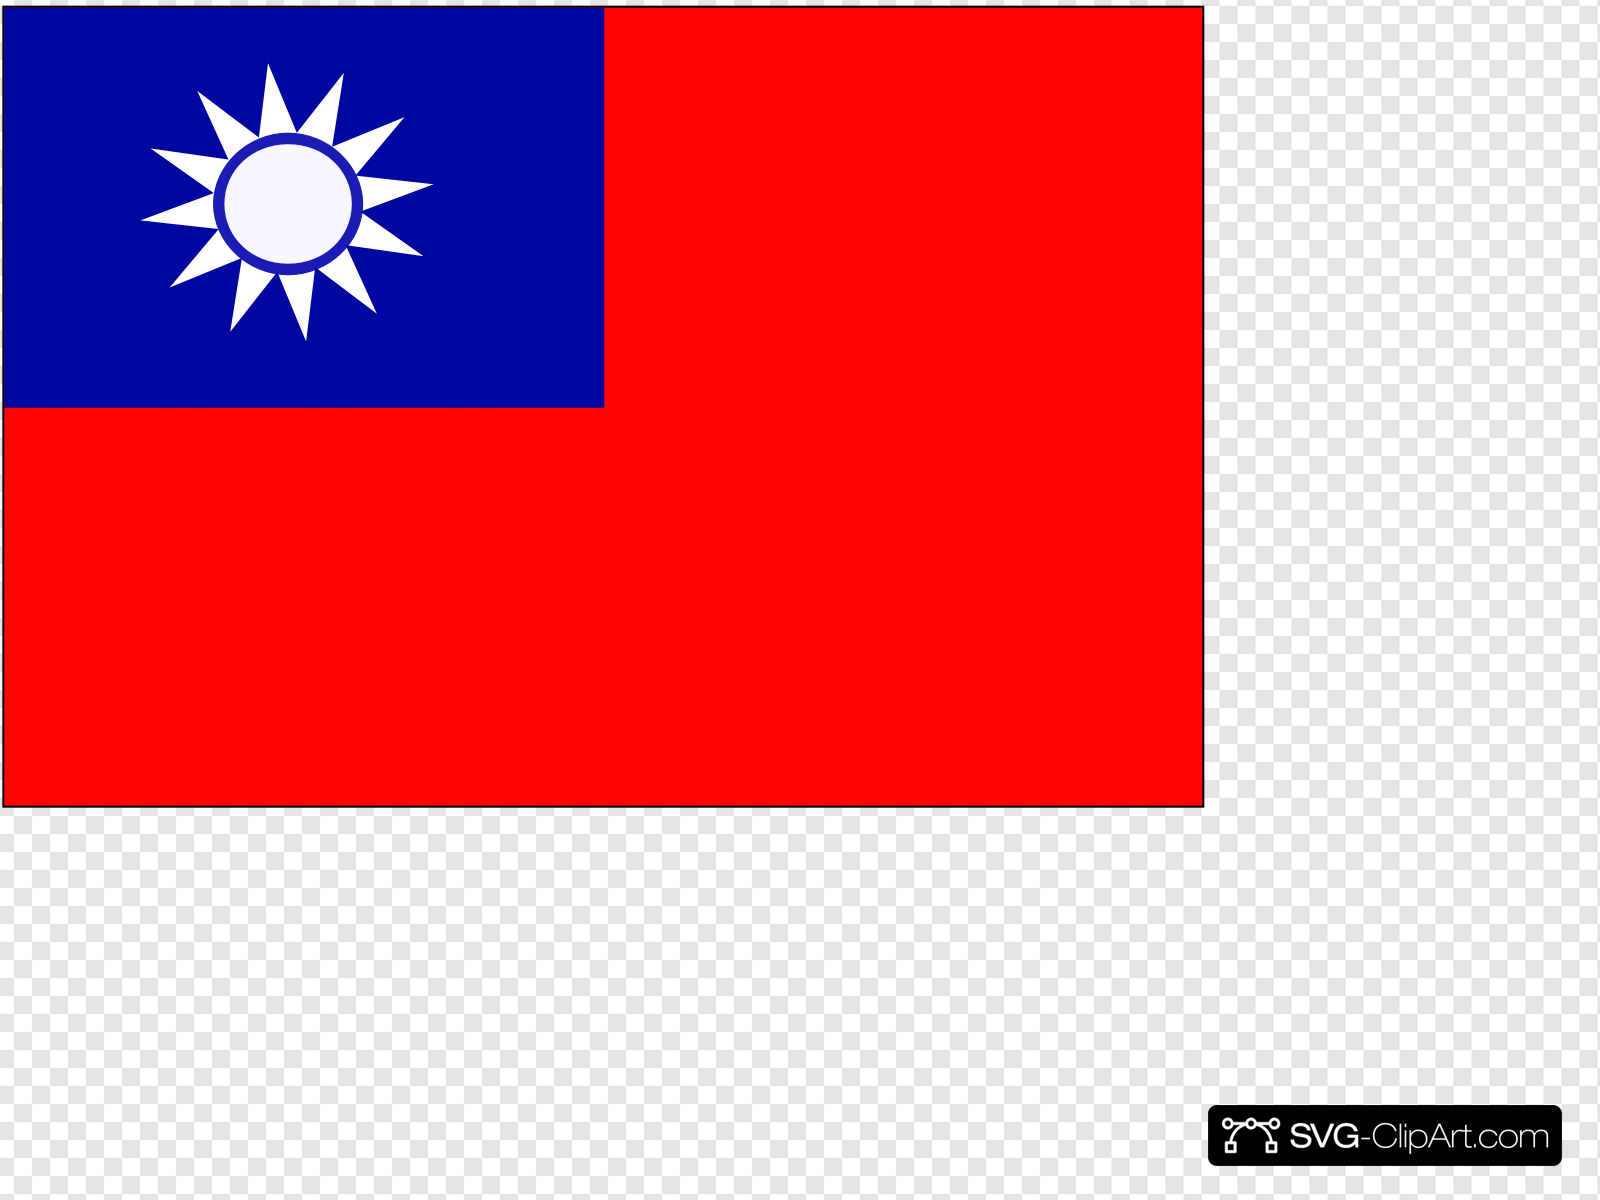 Taiwan Flag Clip art, Icon and SVG.